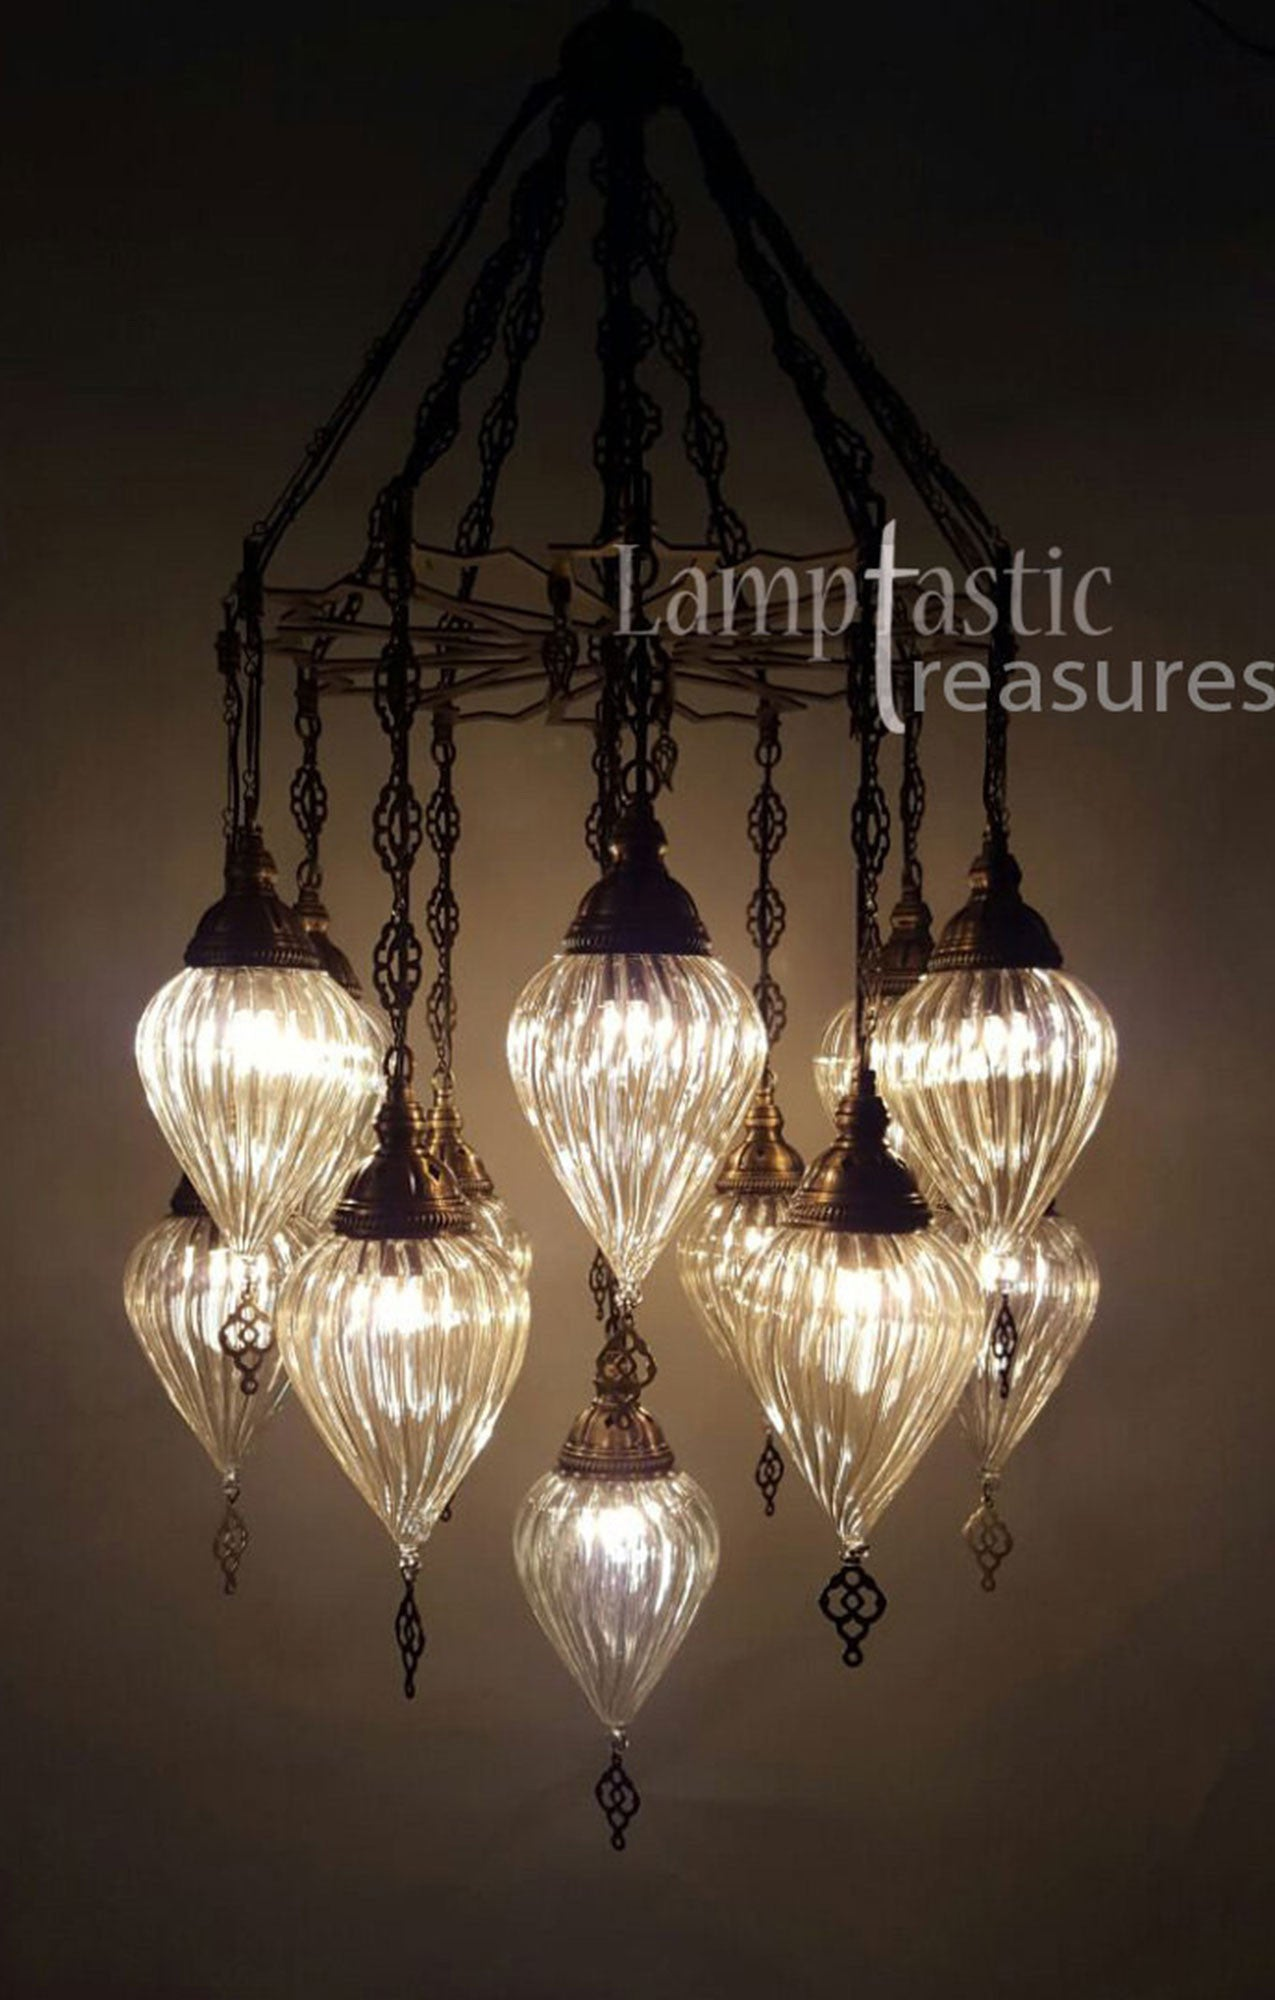 Modern turkish glass chandelier lamptastic turkish lamps turkish lamp turkish mosaic lamps turkish lighting lamps turkish aloadofball Image collections